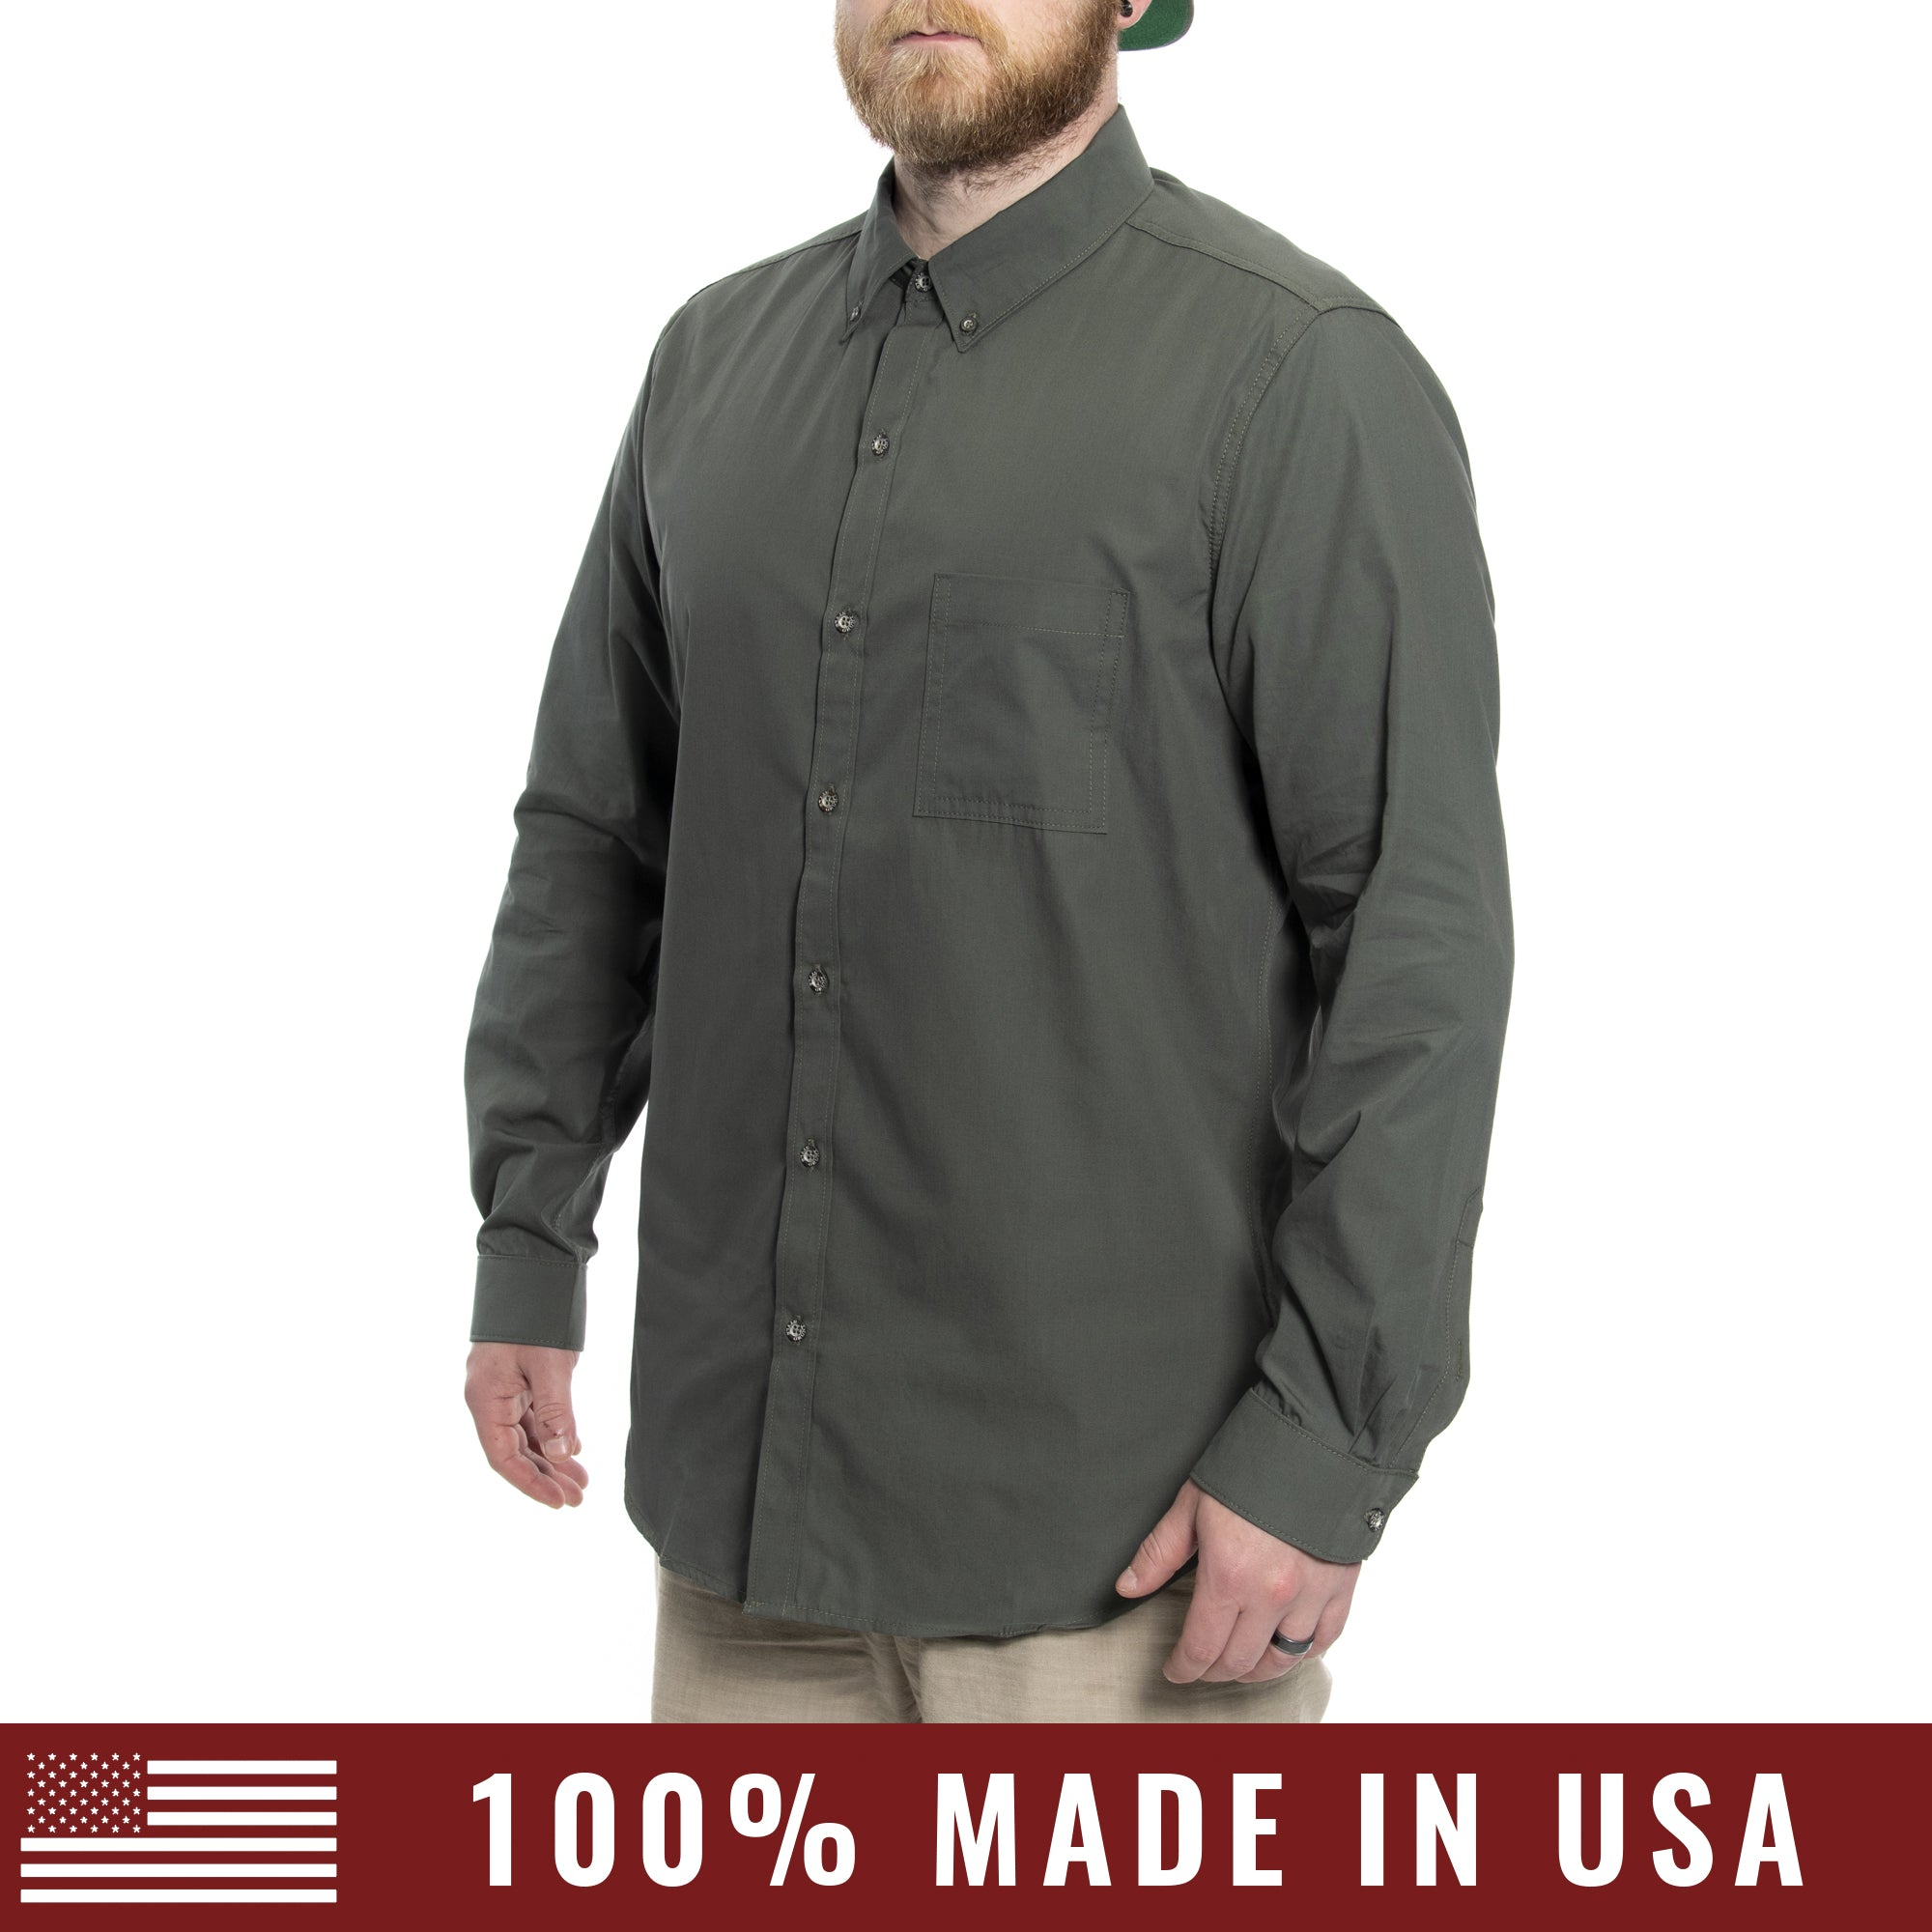 Grunt Style Men's <br><i>Lexington & Concord</i></br> Cotton Long Sleeve Shirt - OD Green